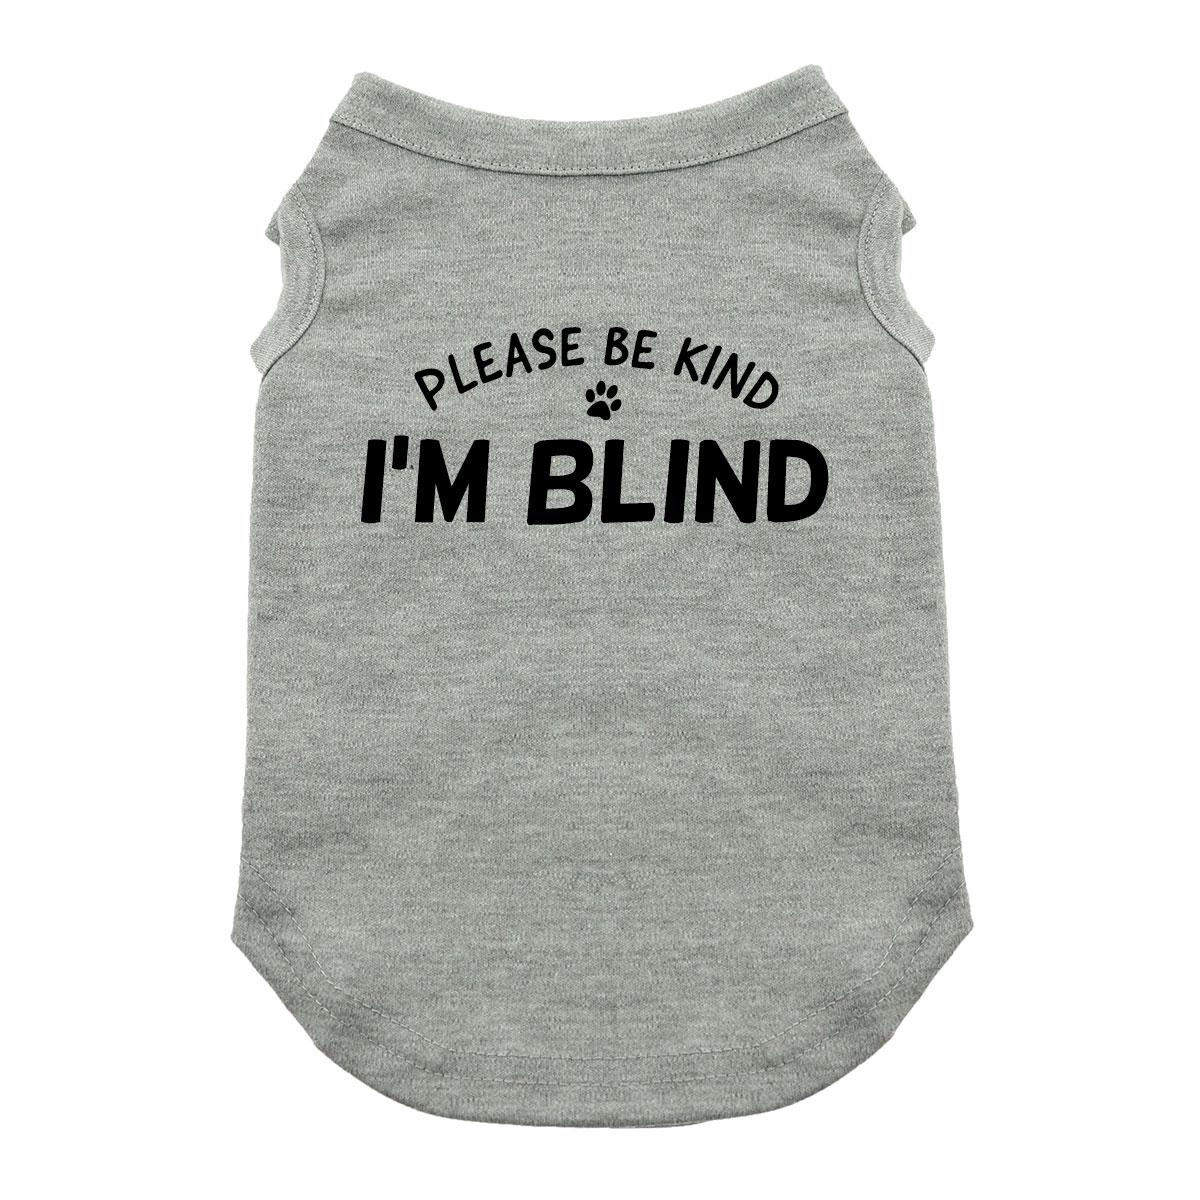 Please Be Kind, I'm Blind Dog Shirt - Gray